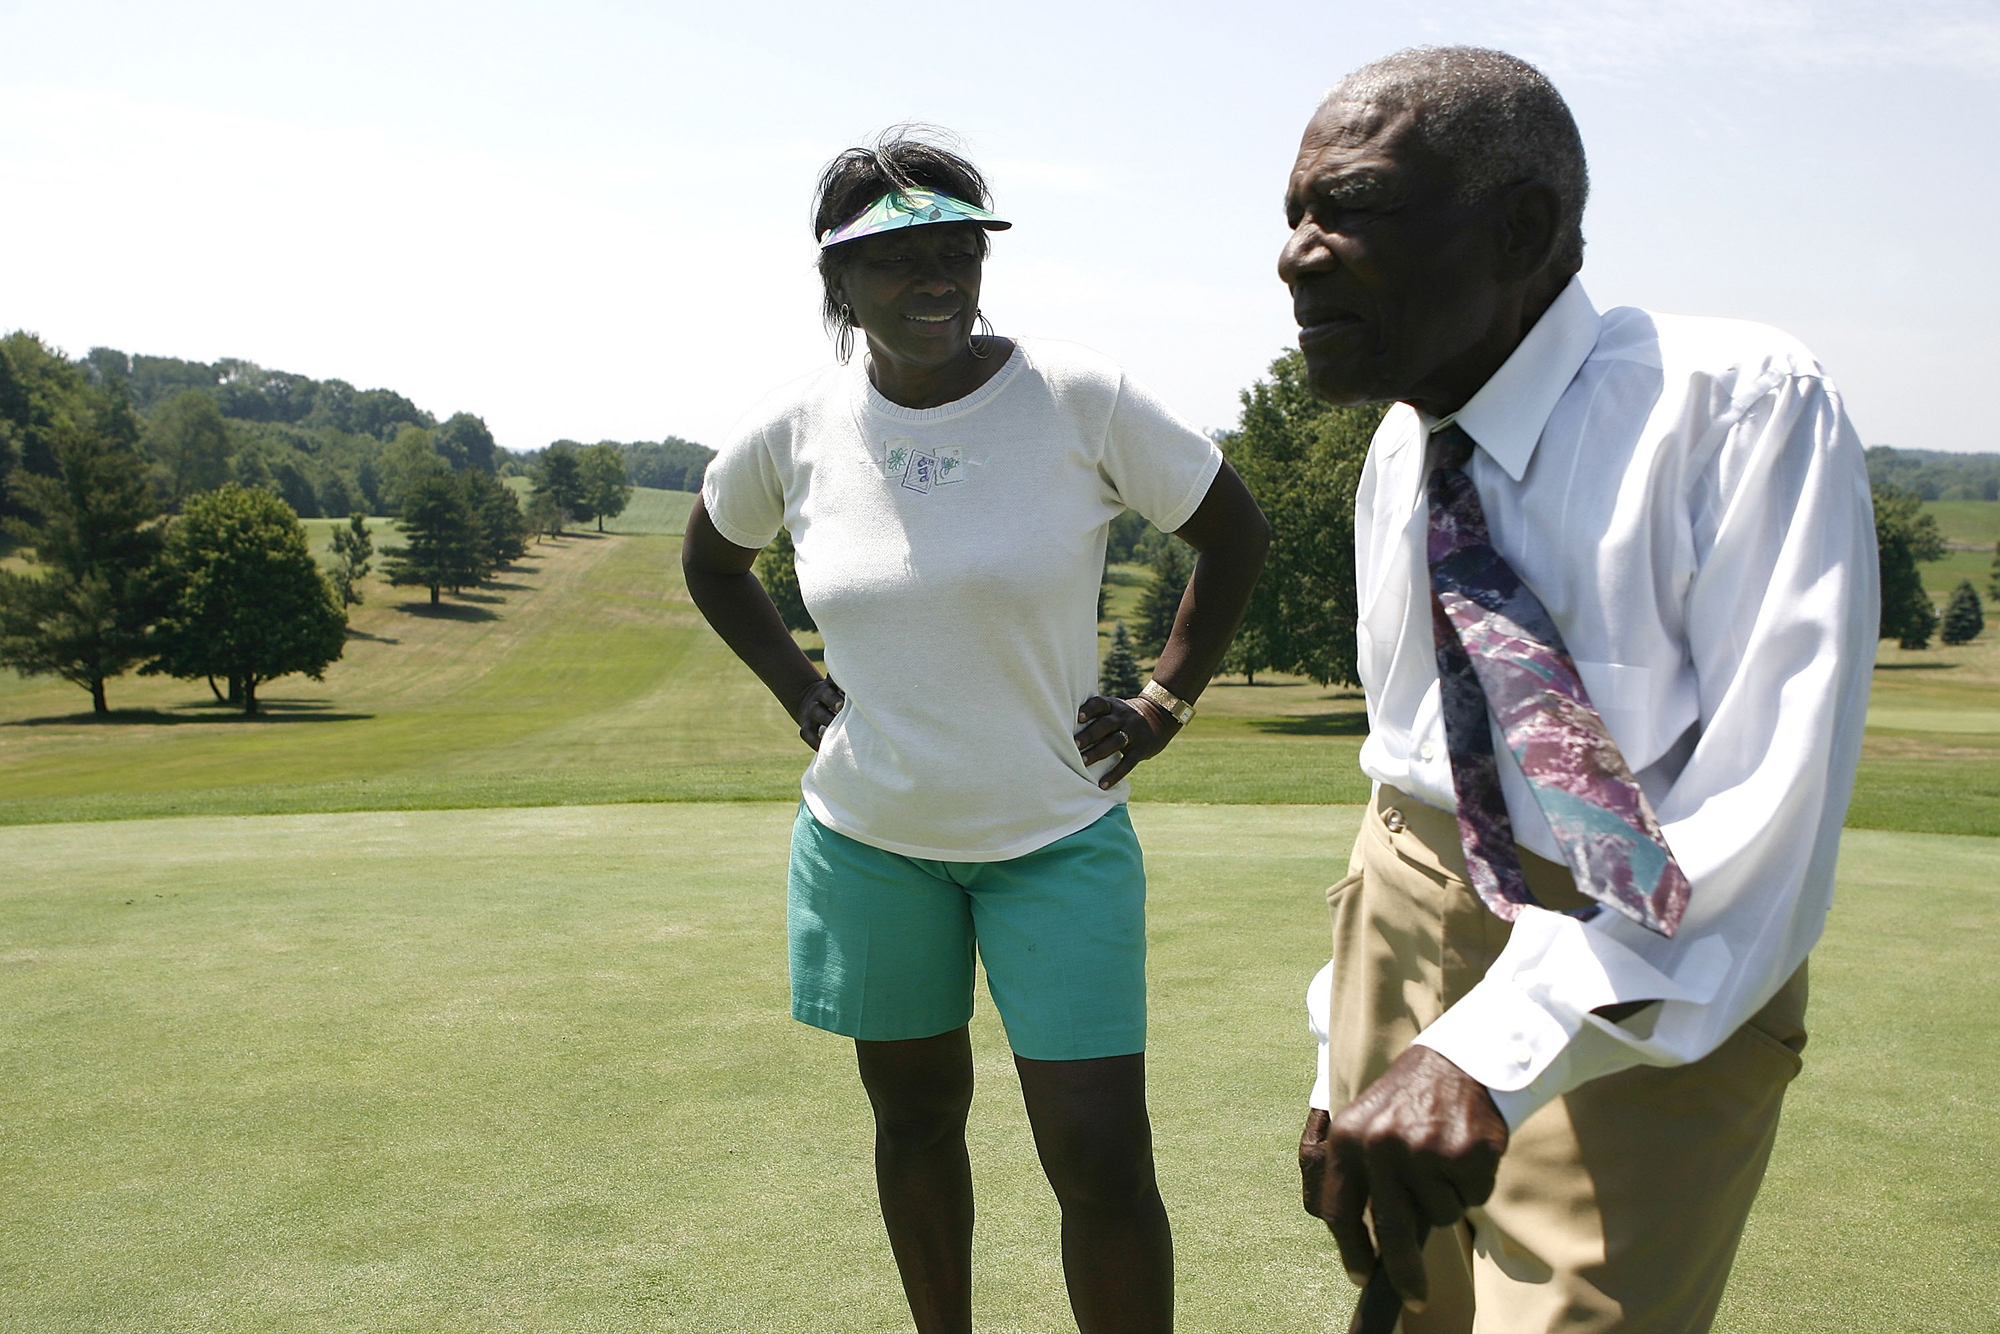 Bill Powell and his daughter Renee Powell talk on a green at Clearview Golf Club on June 25, 2009 in East Canton, Ohio.